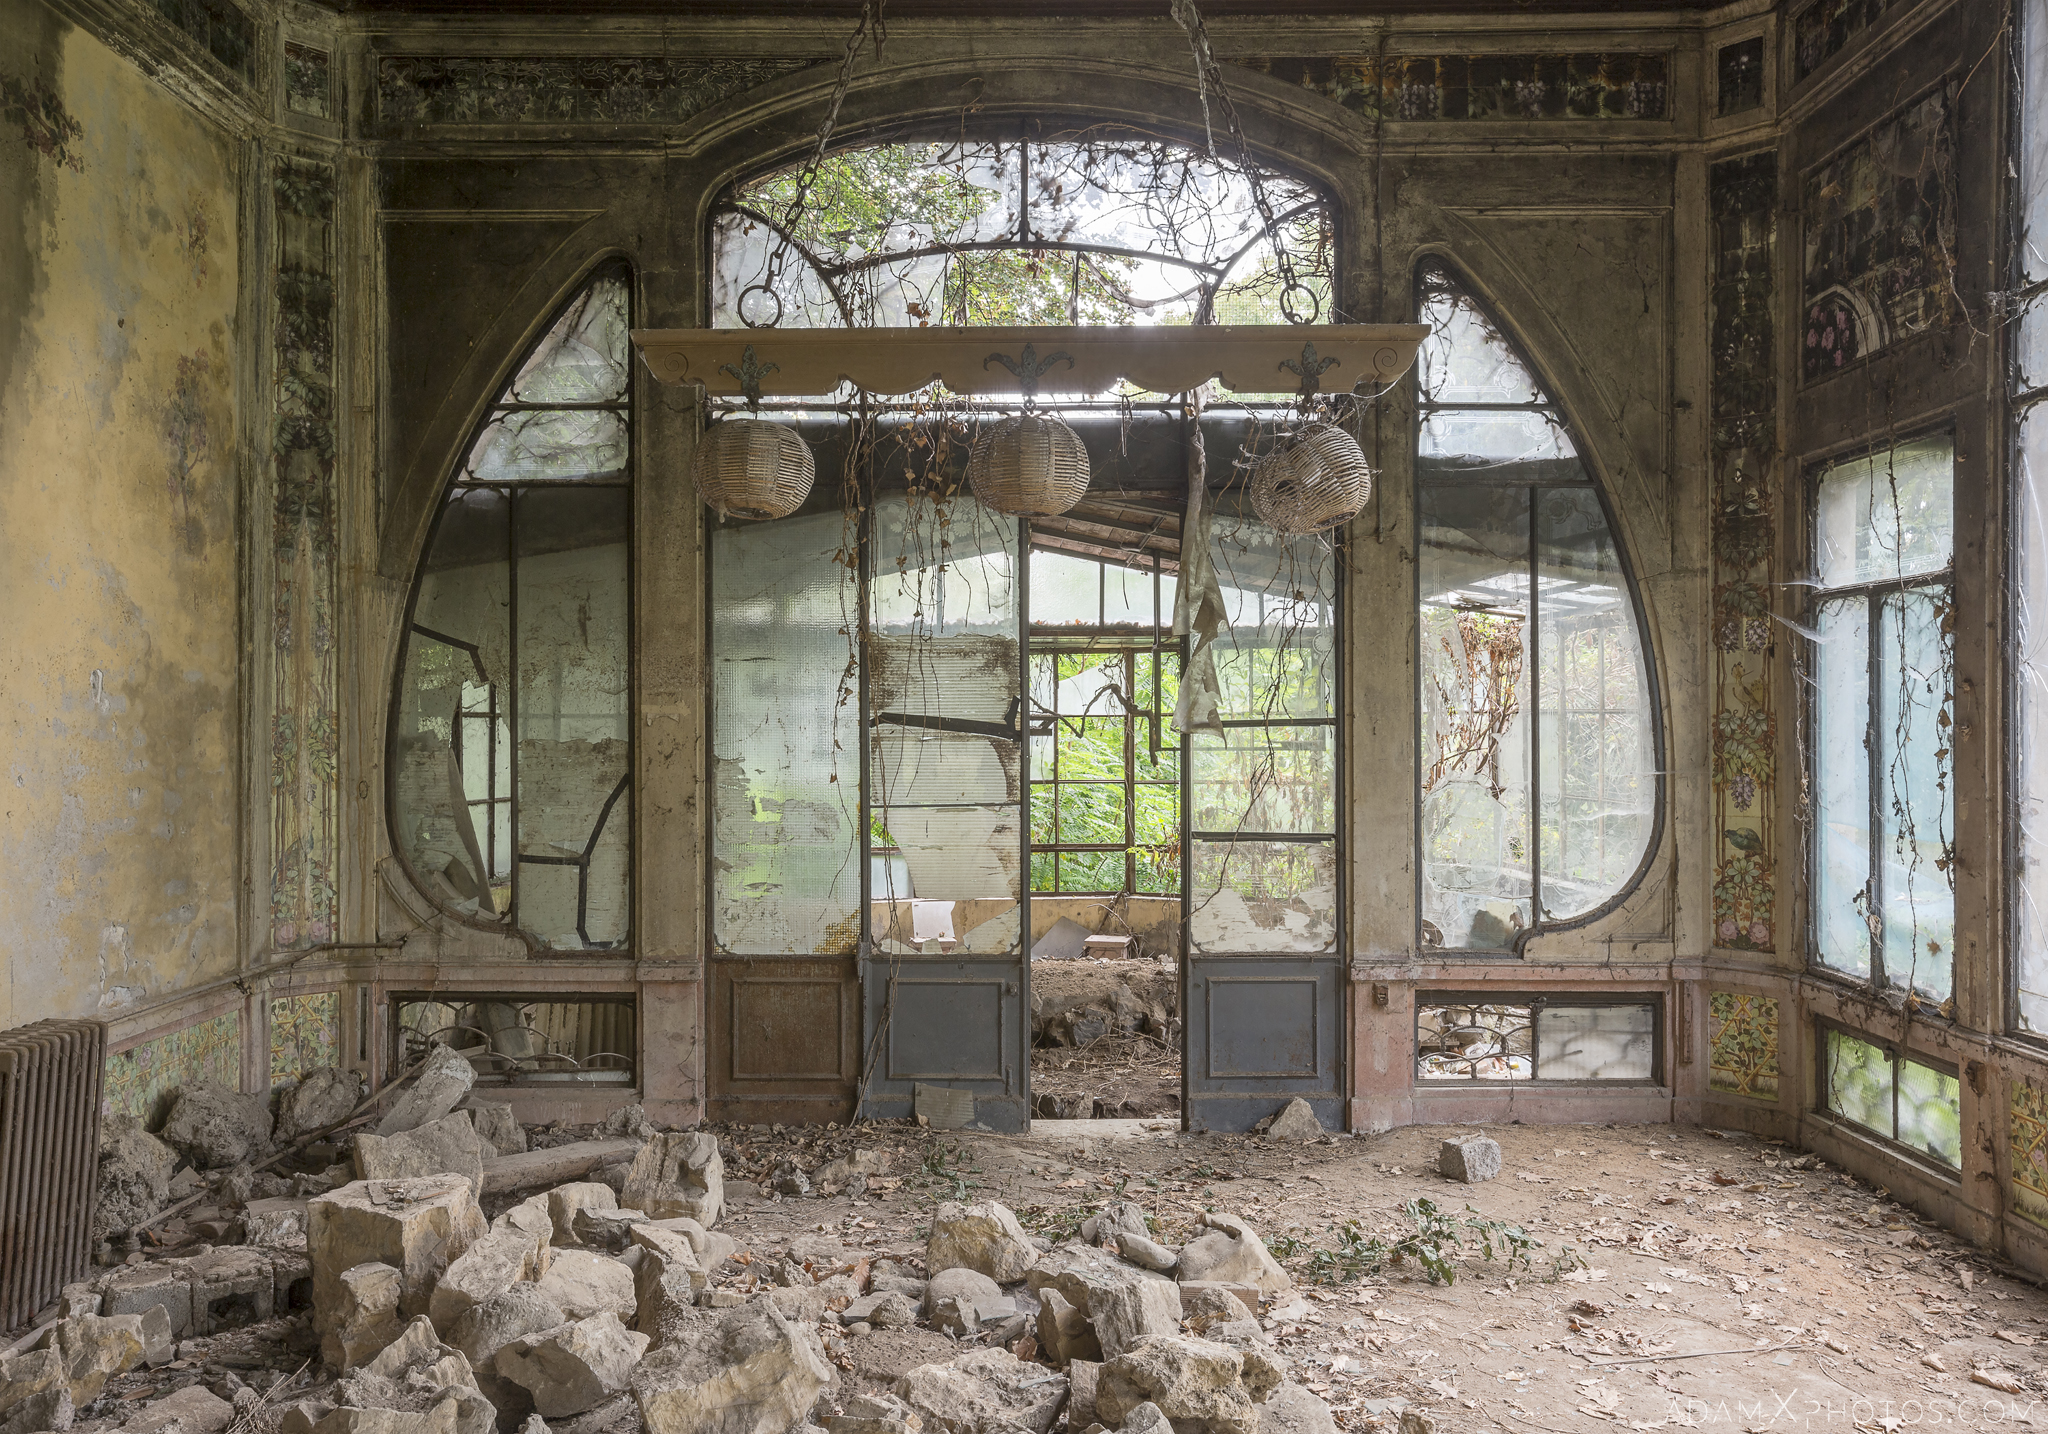 Green Mystery Greenhouse Orangery Garden summer House ornate windows rockery Villa Pesenti P Urbex Adam X Urban Exploration Italy Italia Access 2016 Abandoned decay lost forgotten derelict location creepy haunting eerie